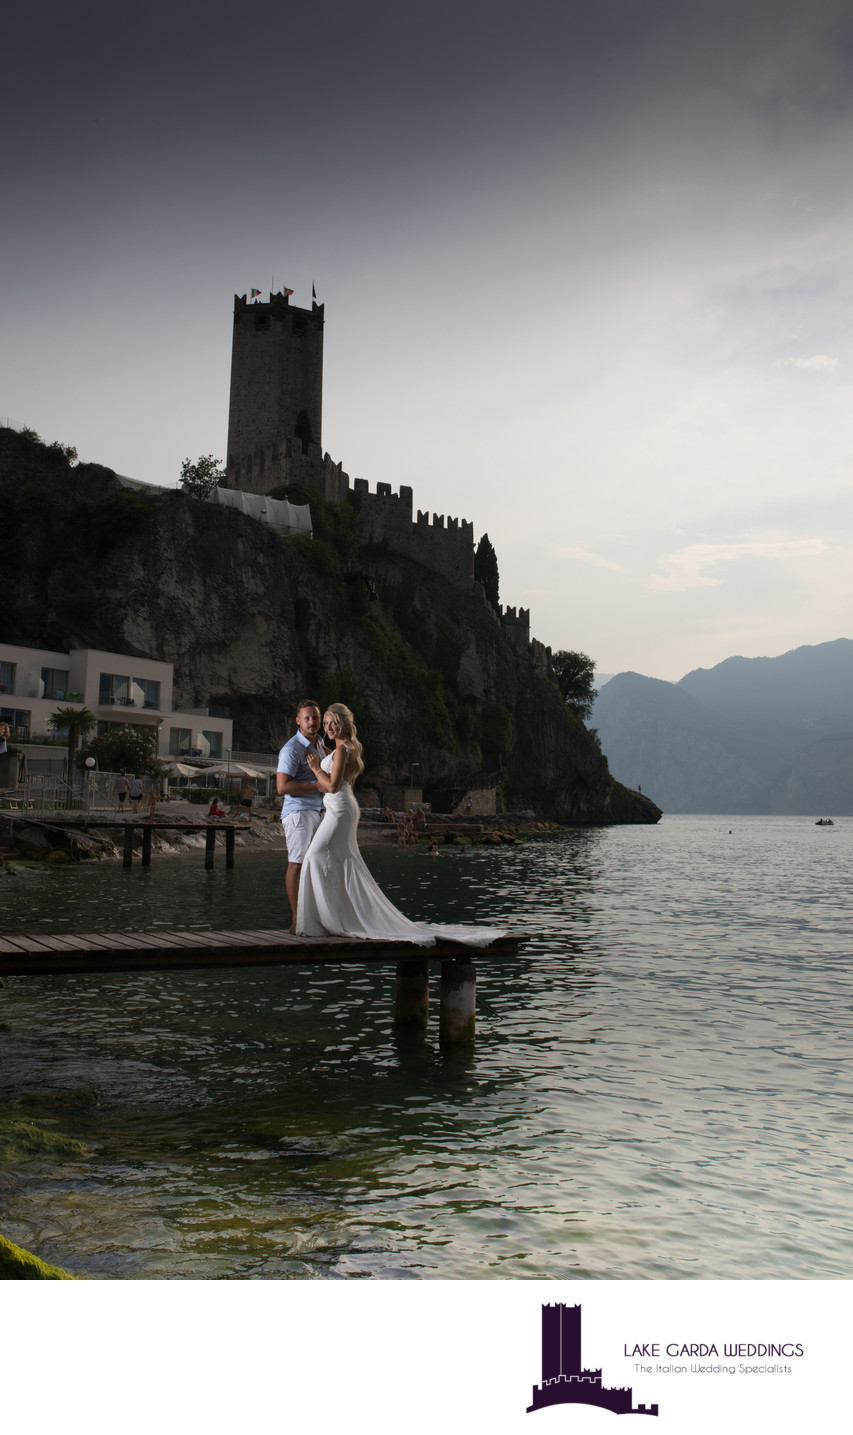 Divine and romantic castle weddings in  Europe.